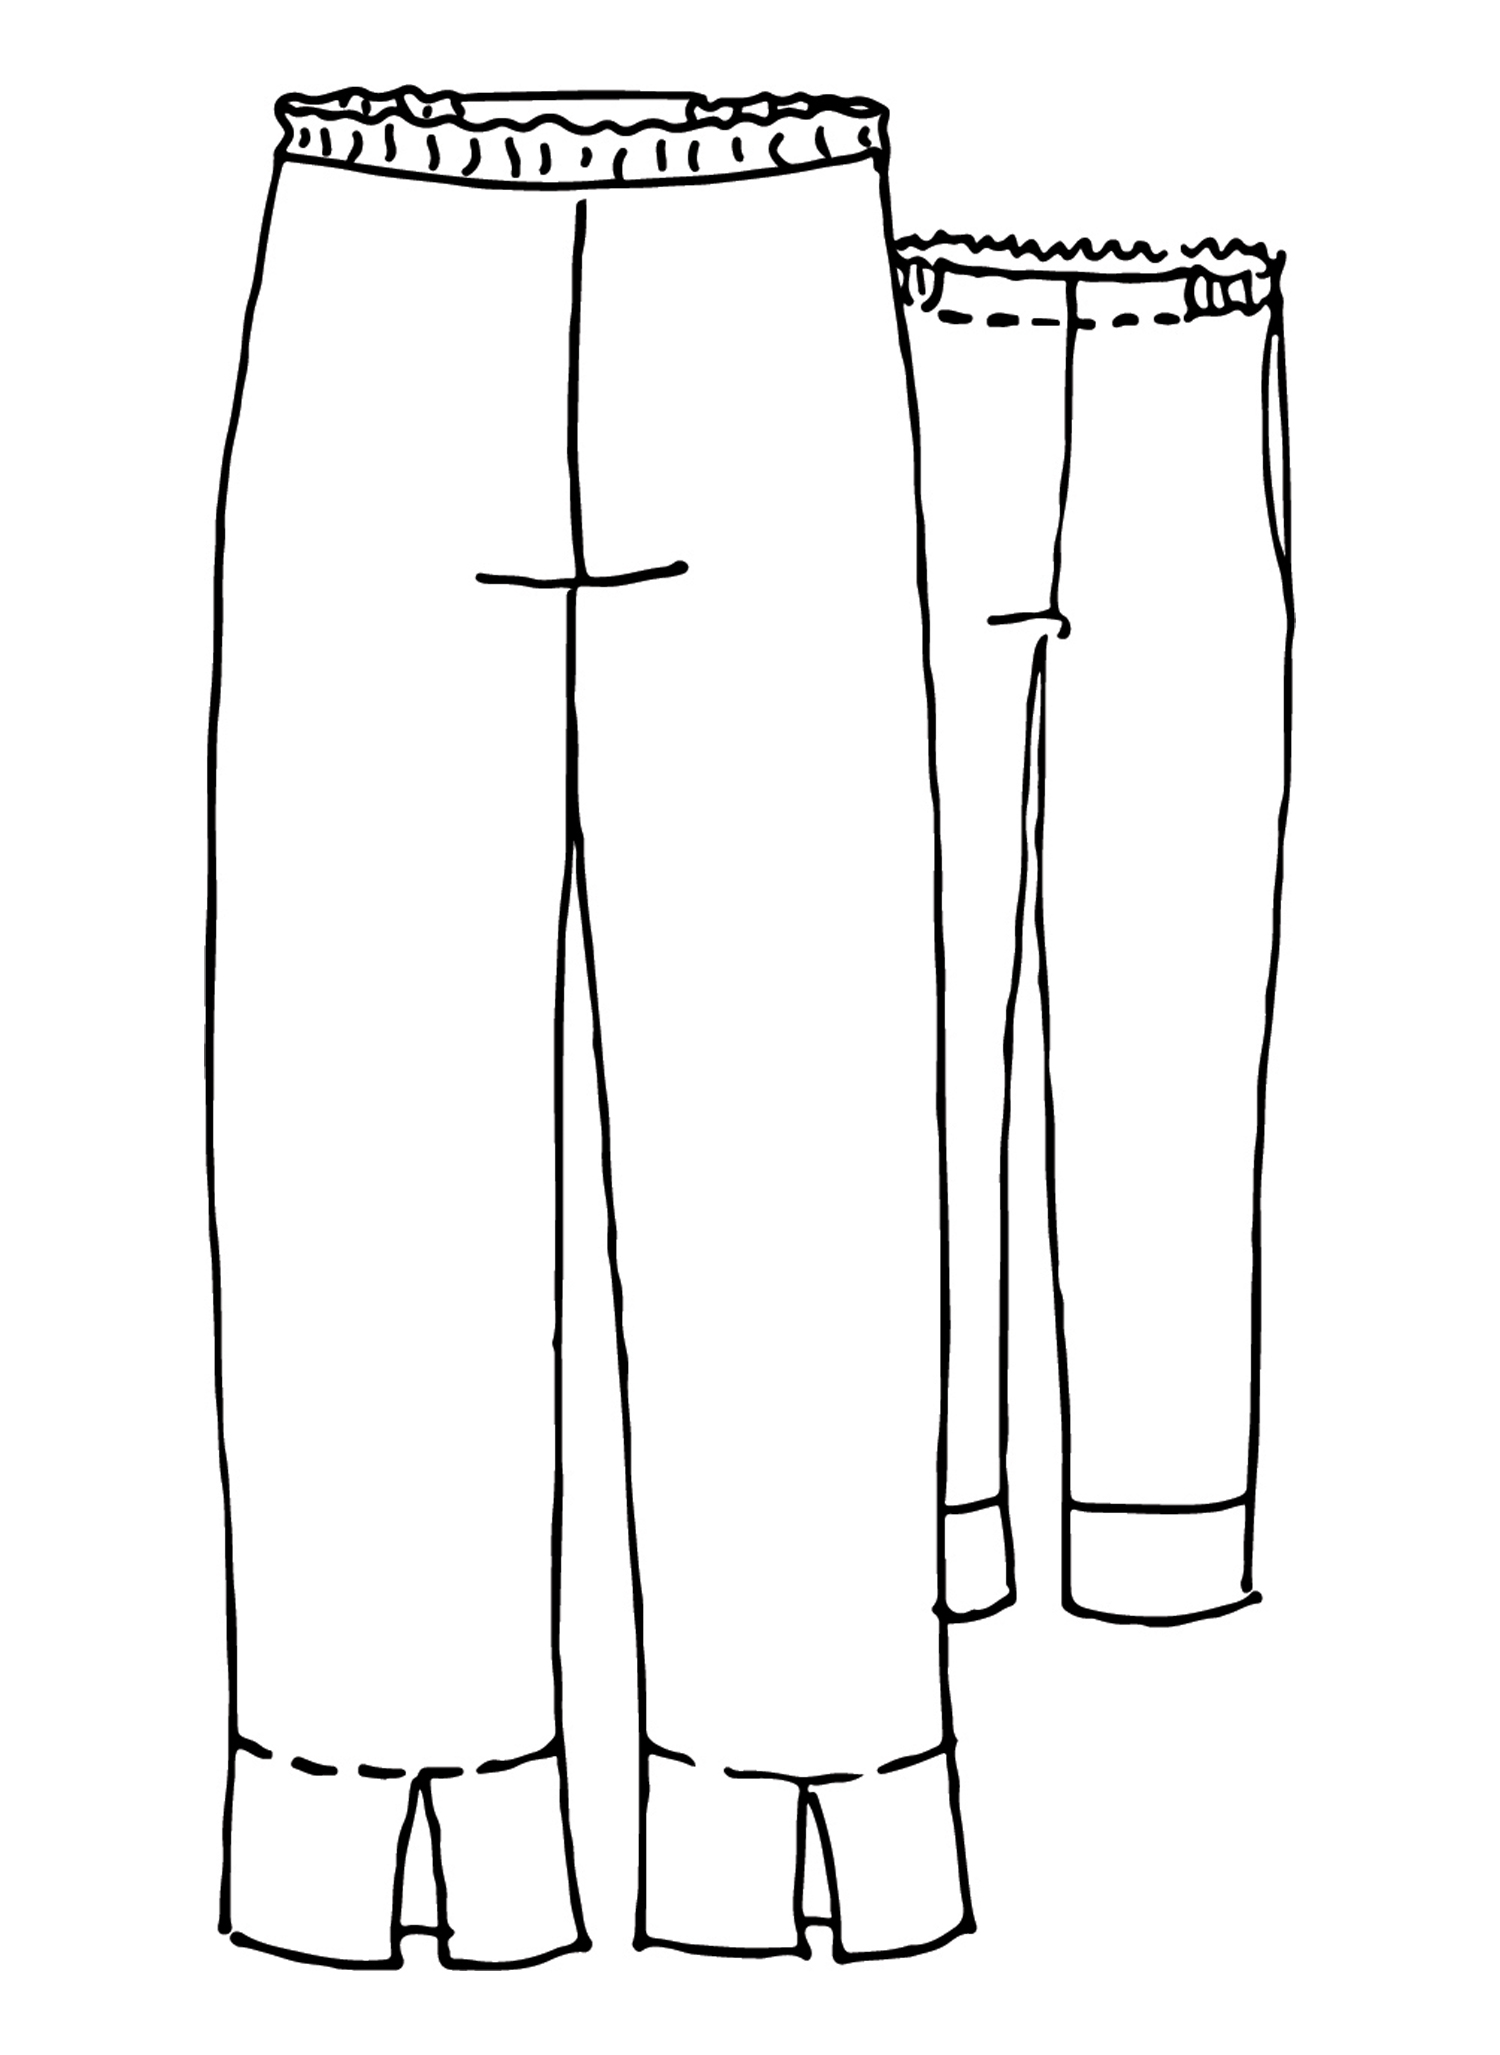 Travel Pant sketch image